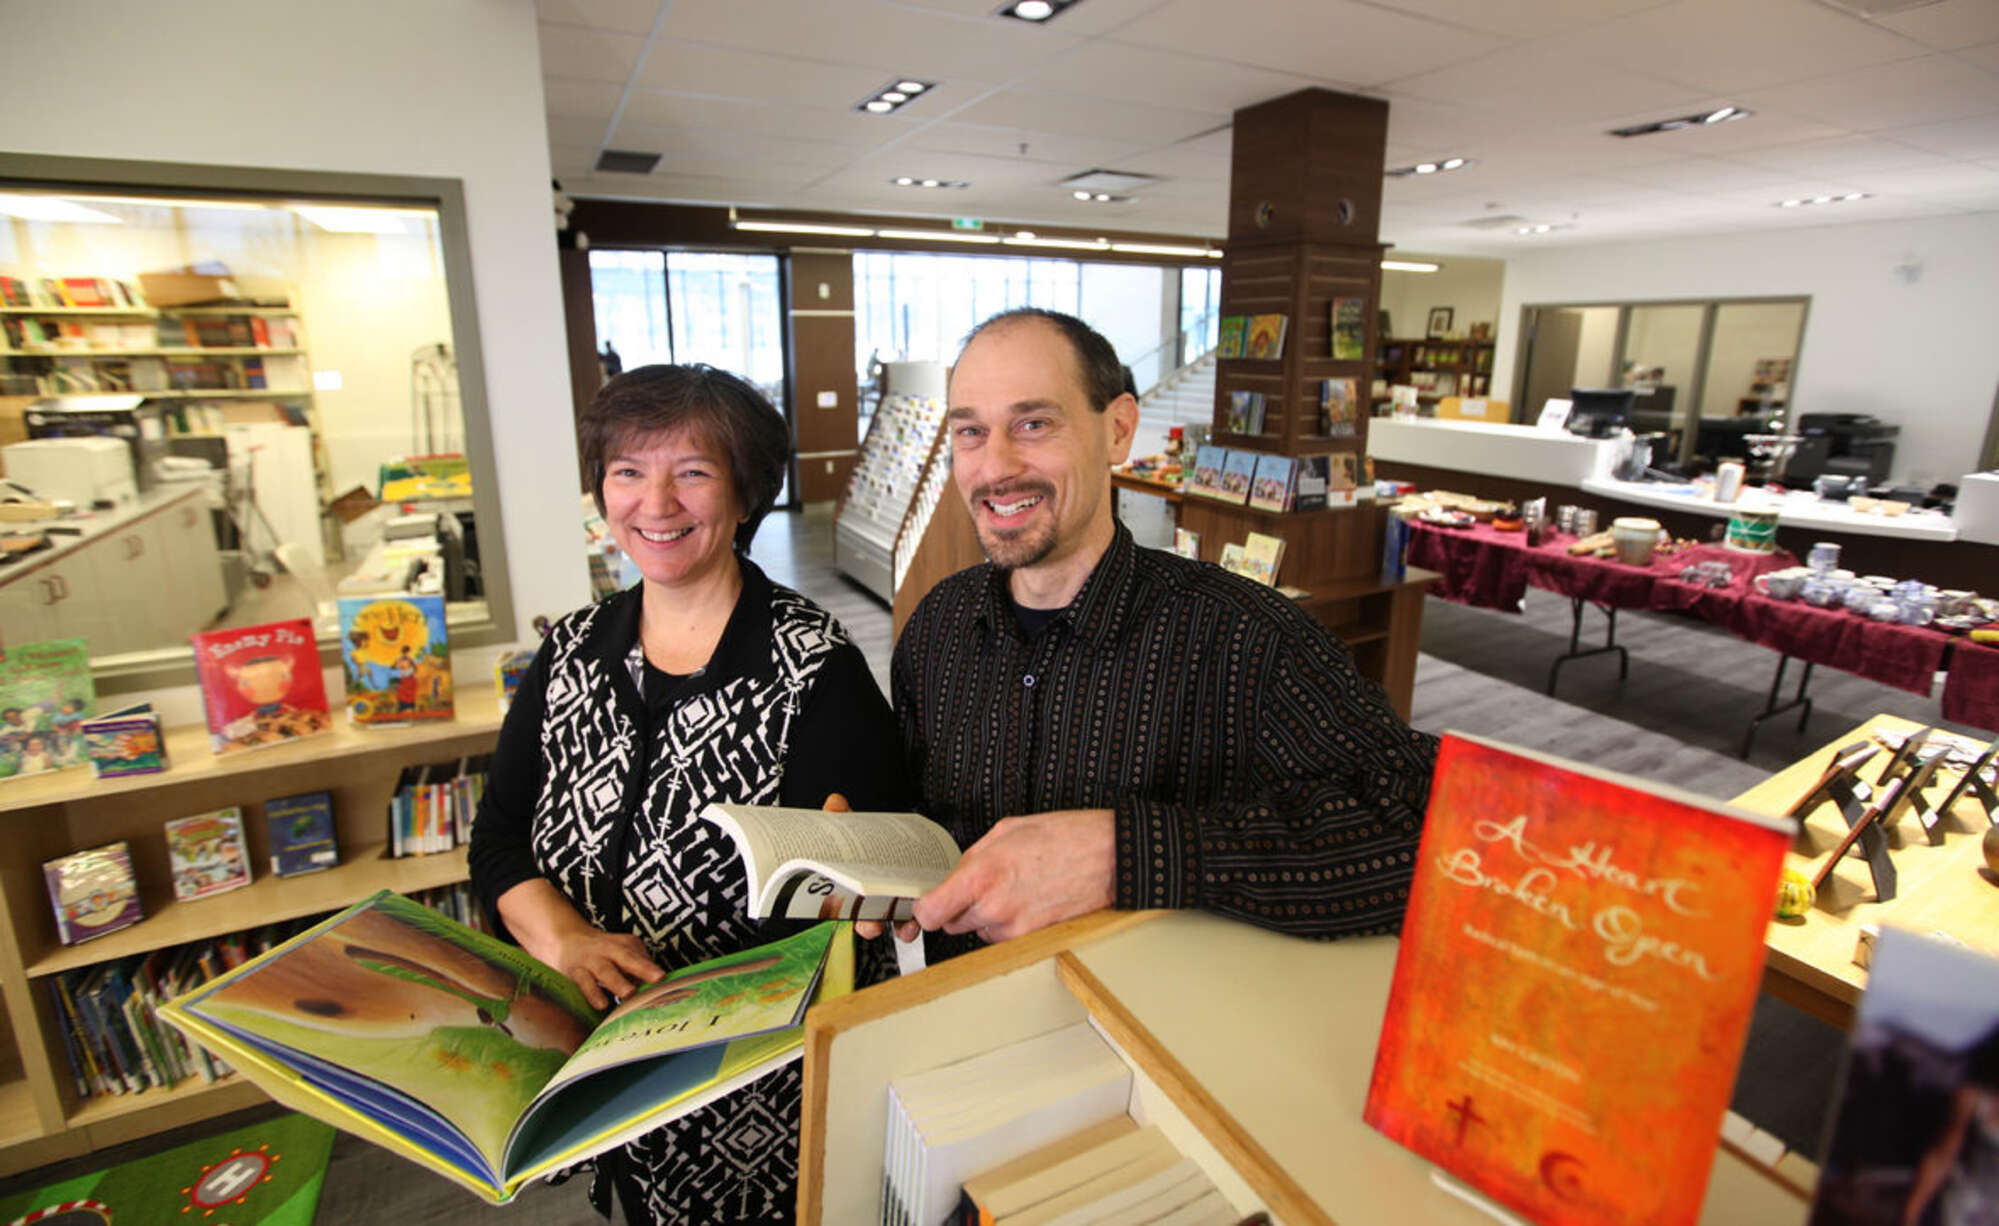 Anita Neufeld and Arlyn Friesen Epp manage CommonWord, which sells and lends books and other materials at Canadian Mennonite University.